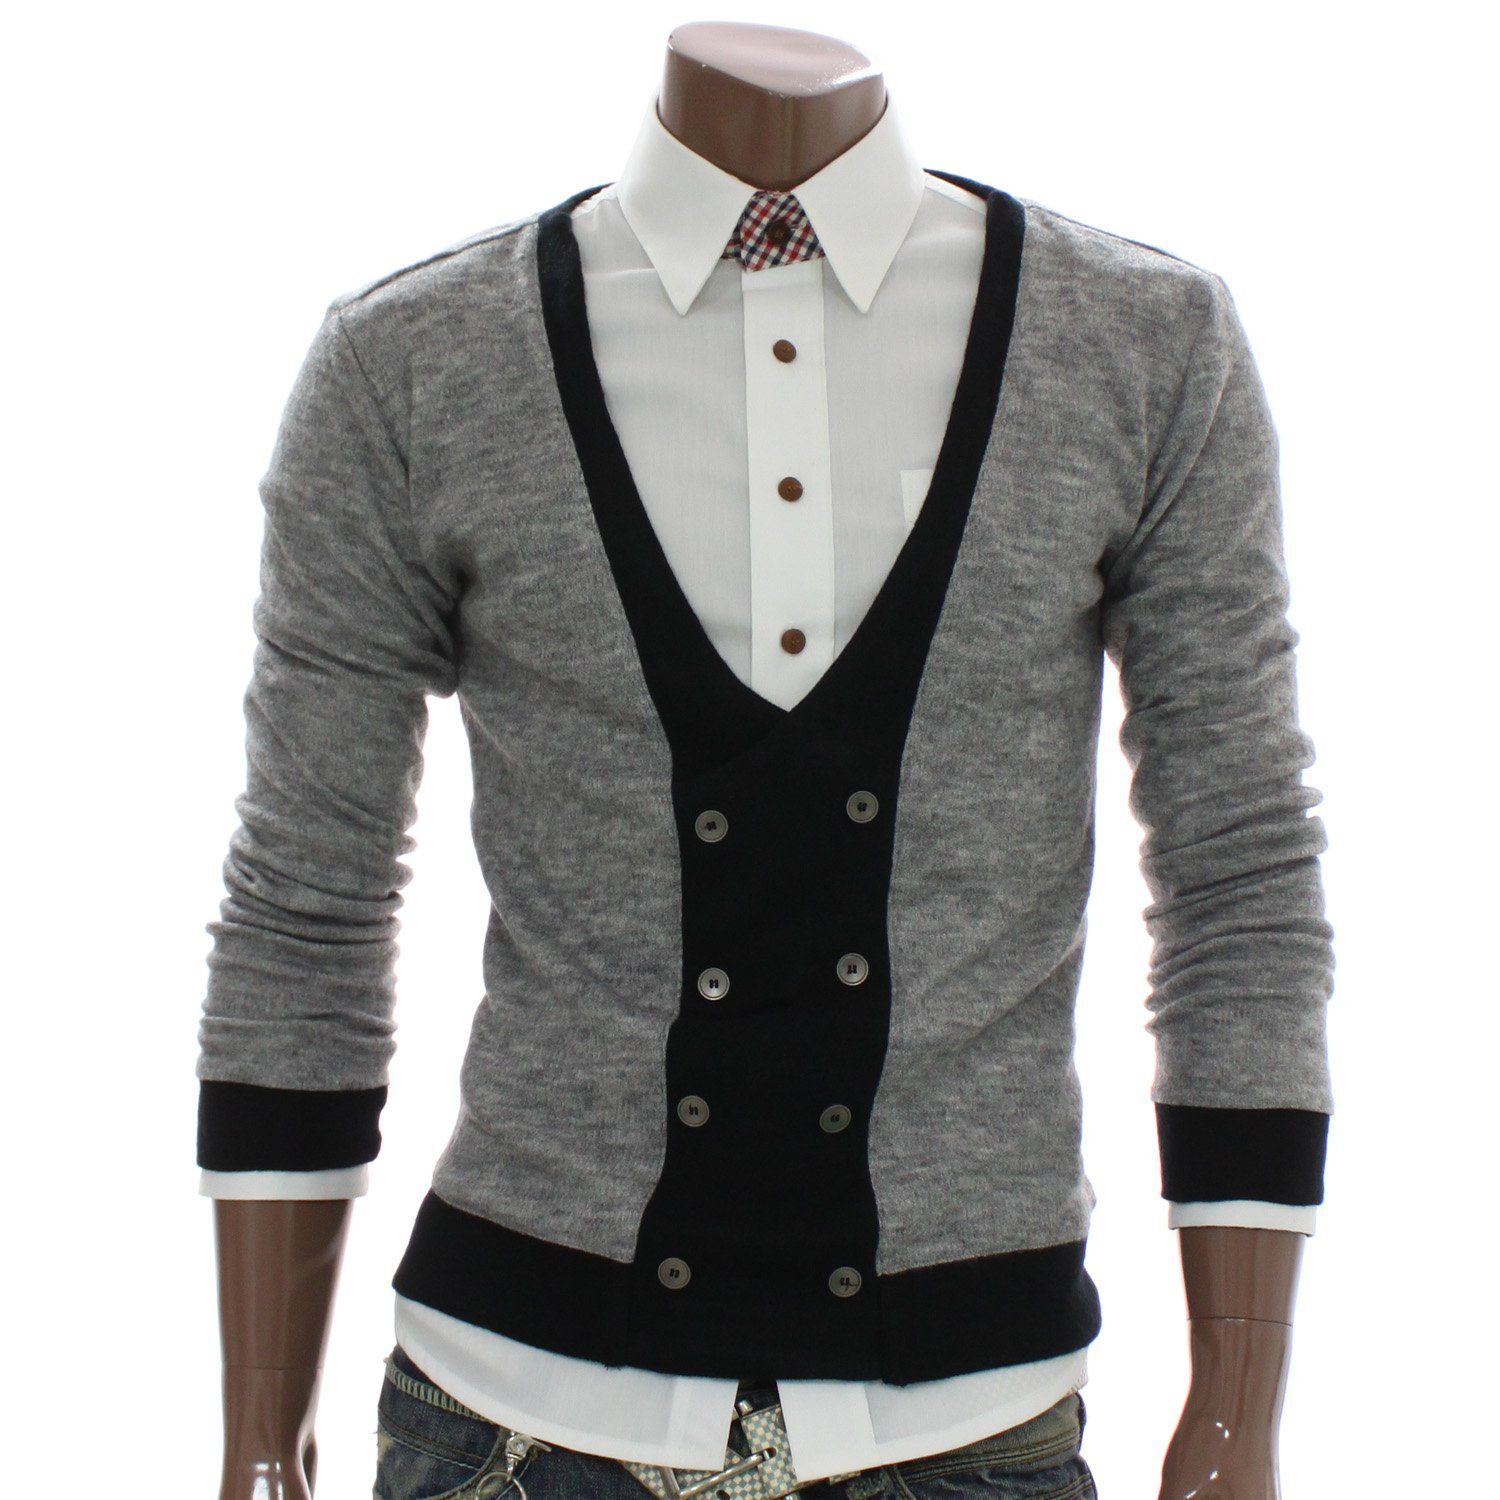 Varieties of Mens Cardigans for the Winter Period